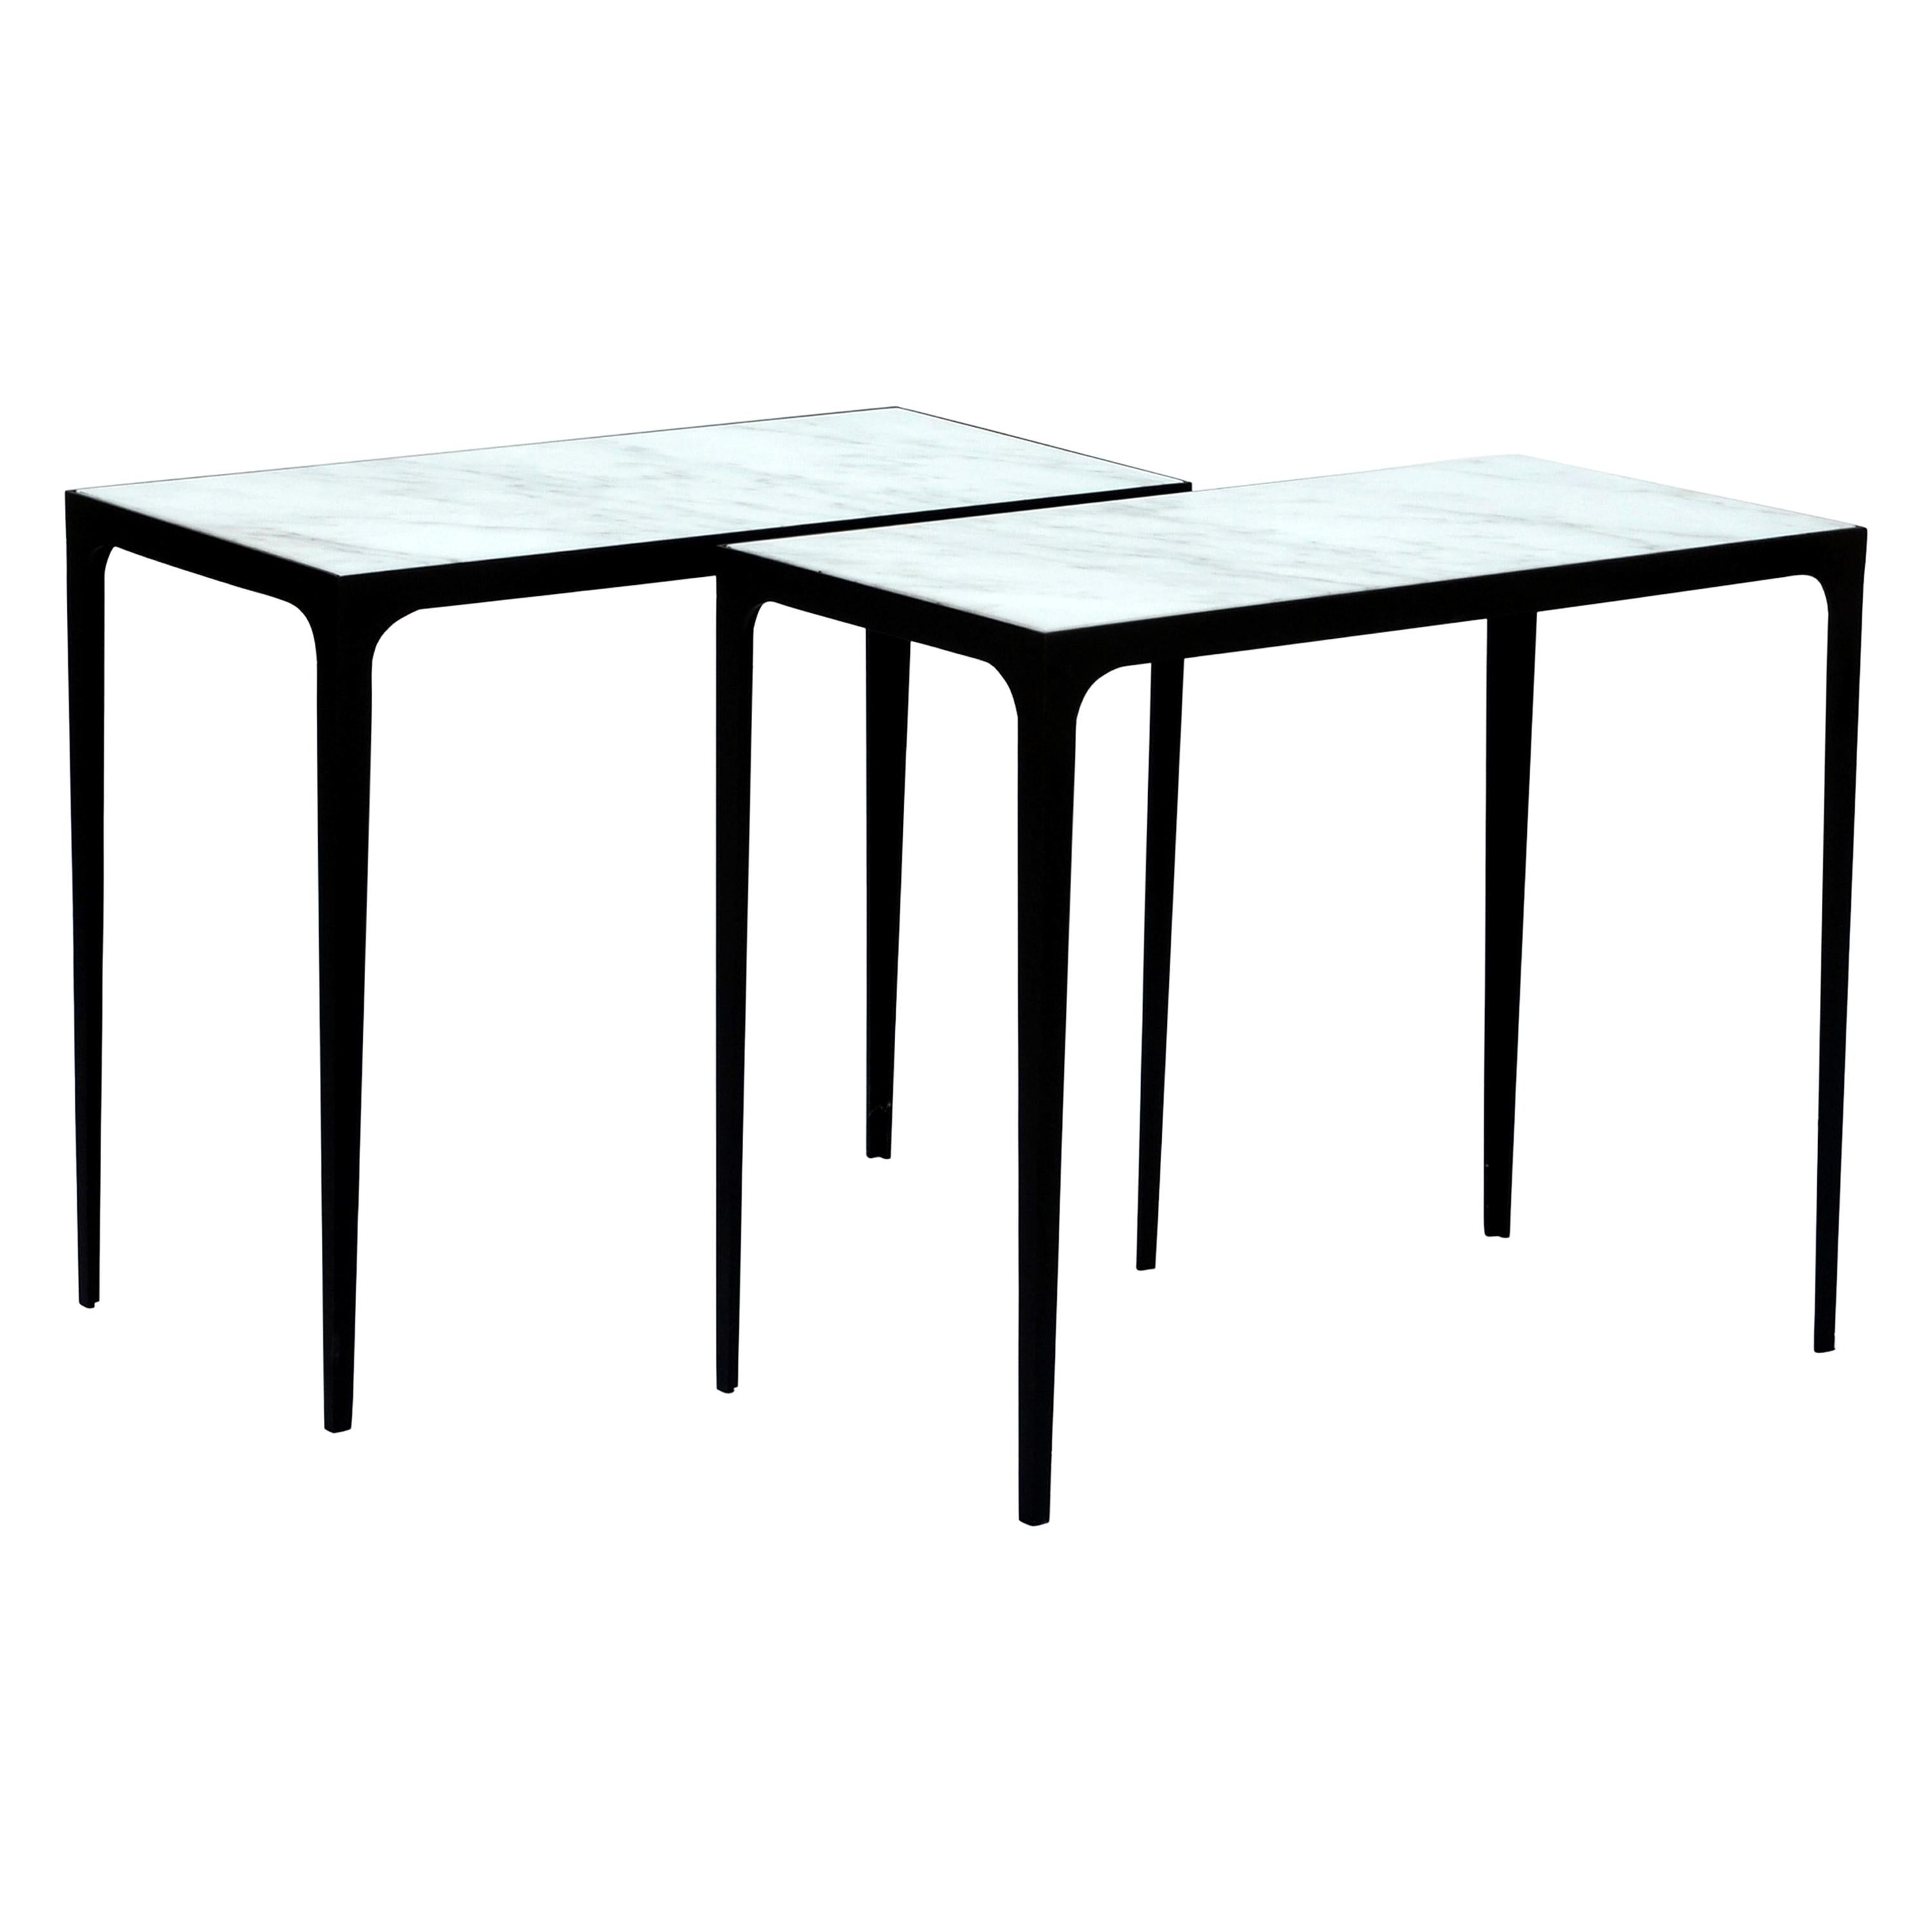 Pair of 'Esquisse' Wrought Iron and Marble Side Tables by Design Frères